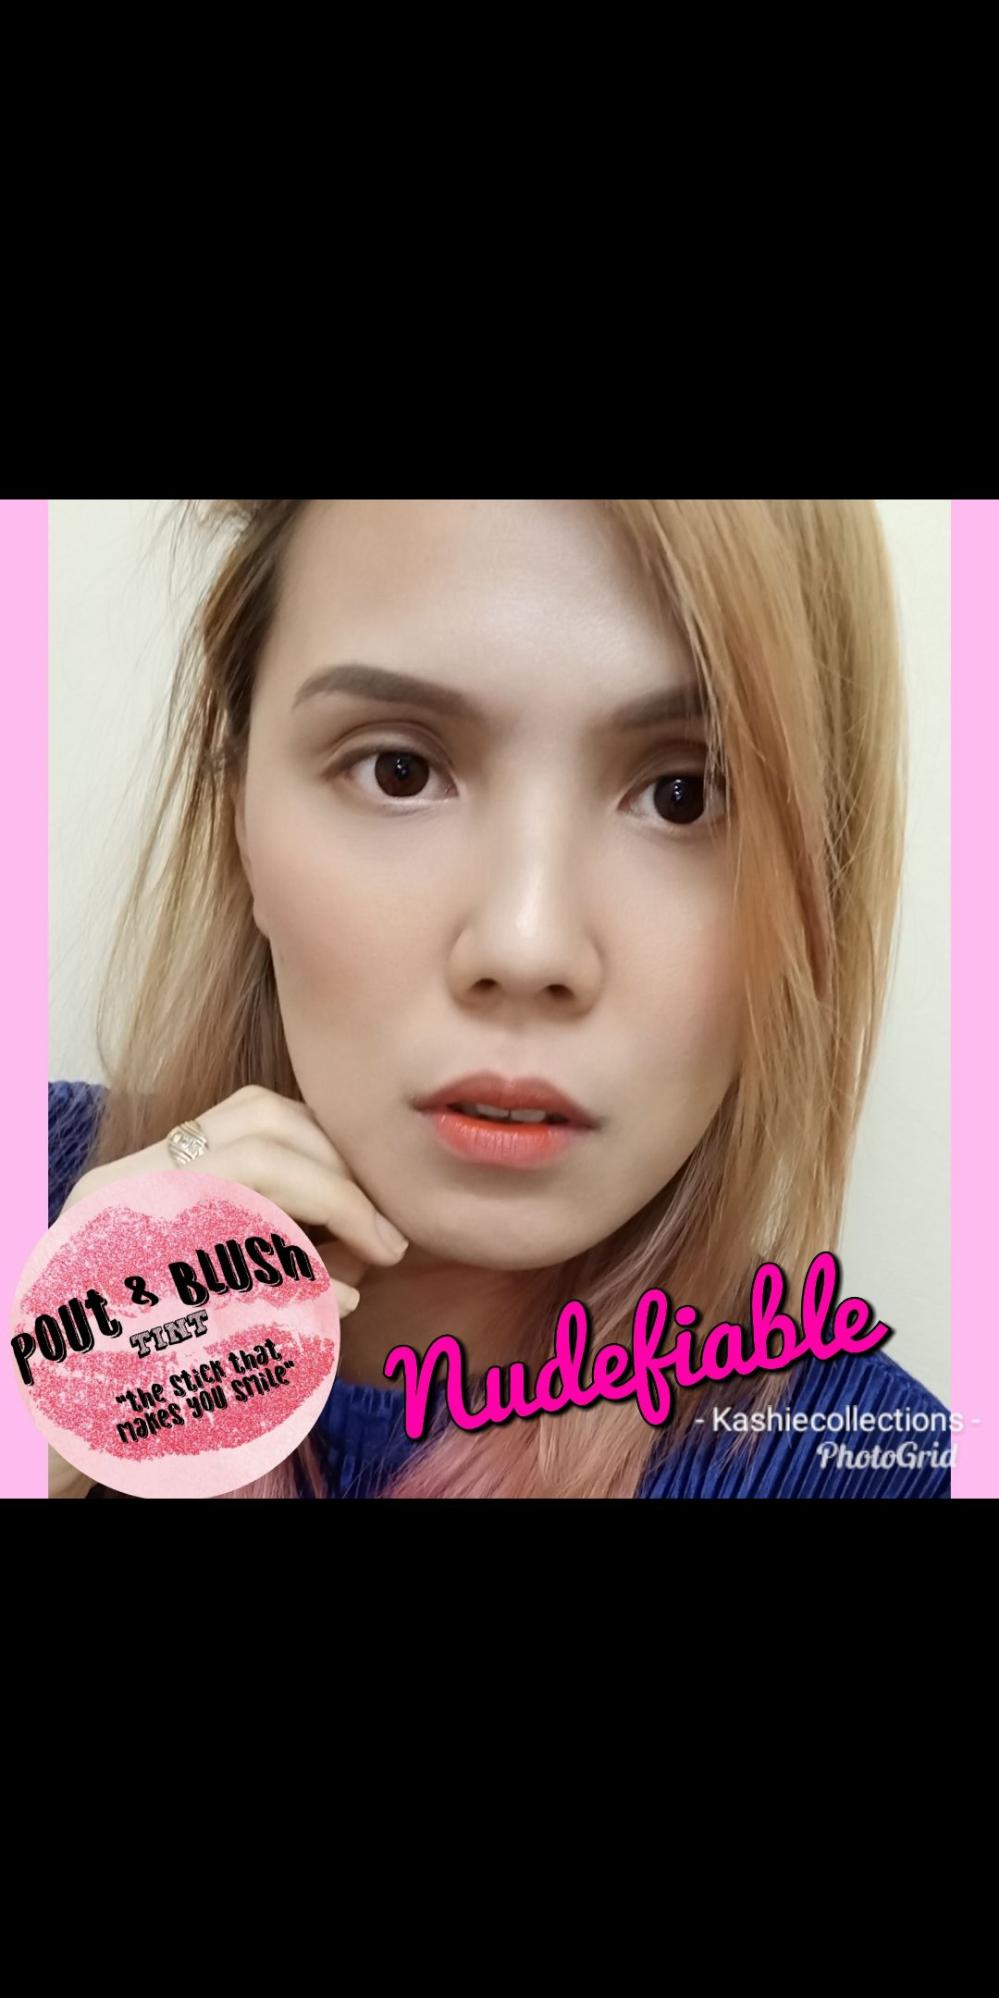 Philippines Bestsellers Candy Online Shiny Smooth Muscle Flawless Bioaqua Smoot Blush On Pout Lip And Cheek Tint